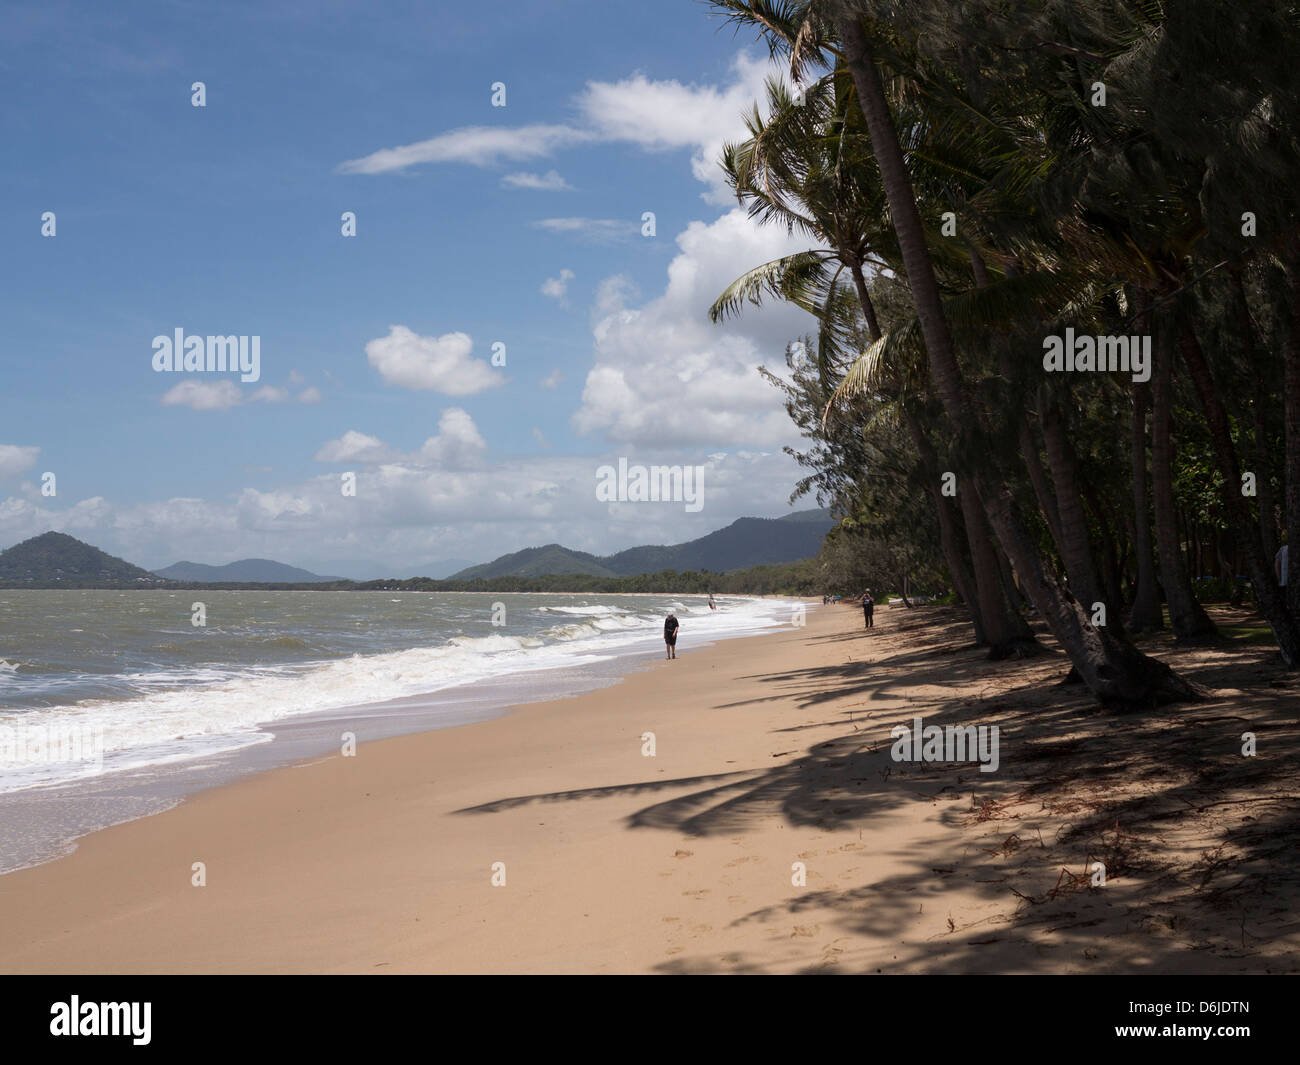 Beach at Palm Cove, Cairns, North Queensland, Australia, Pacific Stock Photo